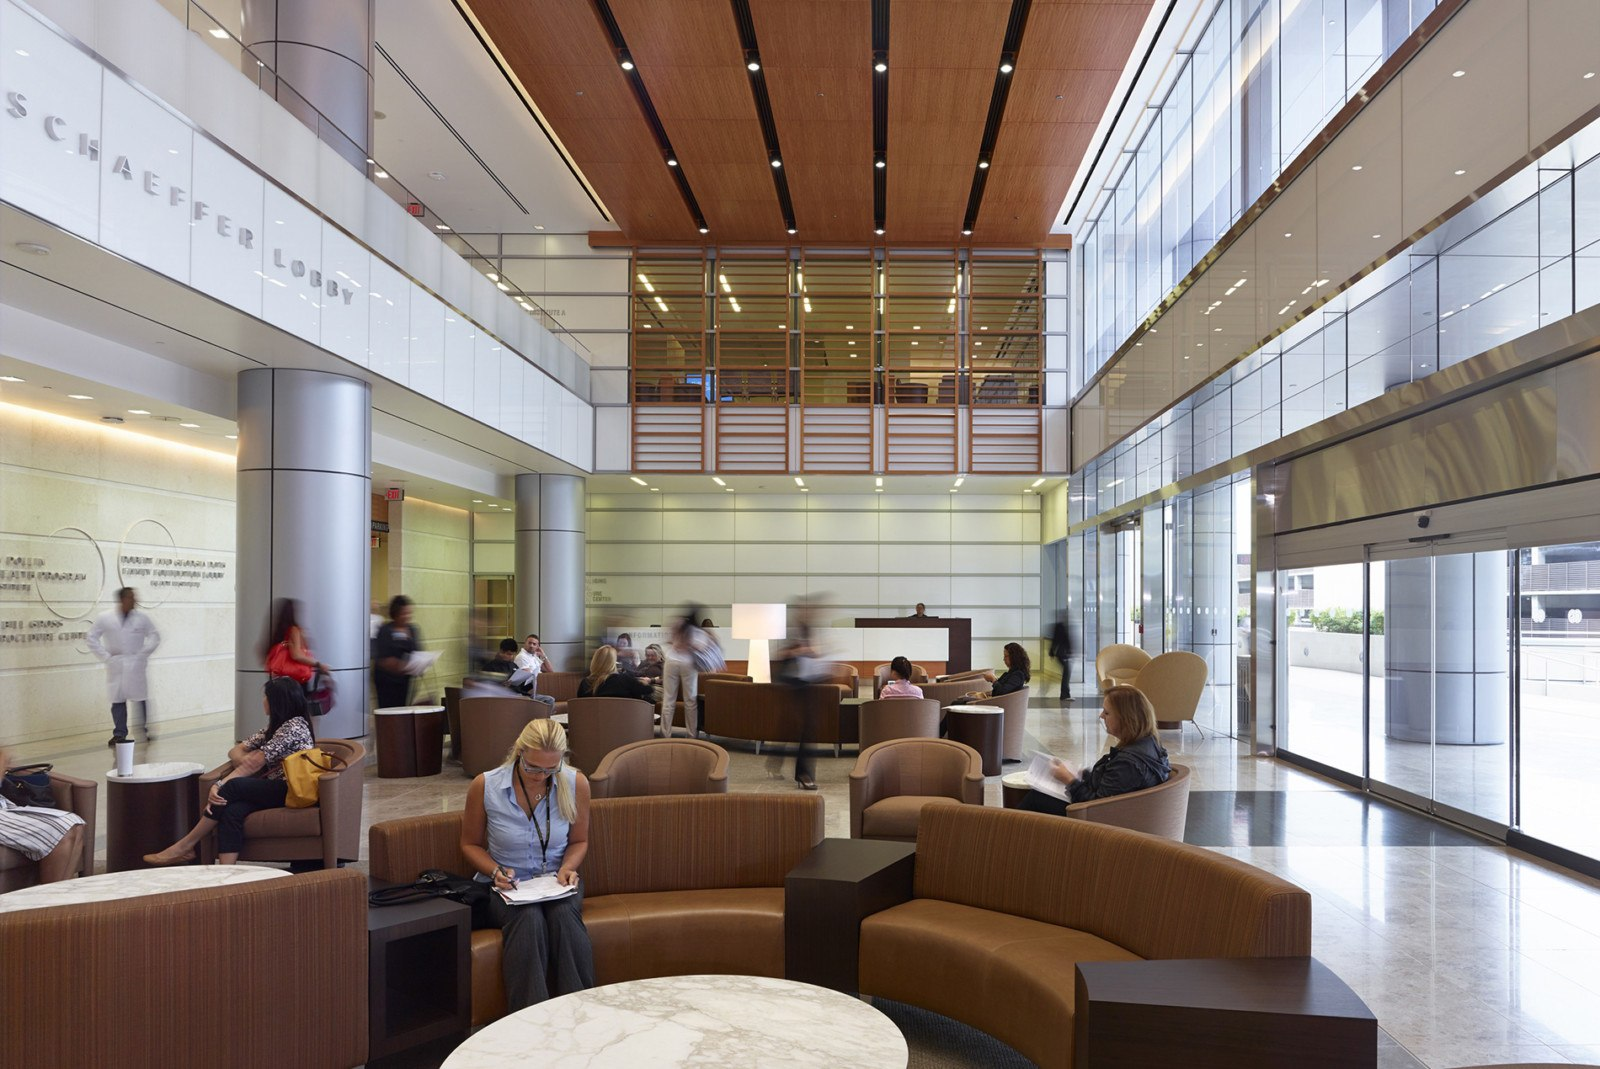 Cedars-Sinai Advanced Health Sciences Pavilion - HOK